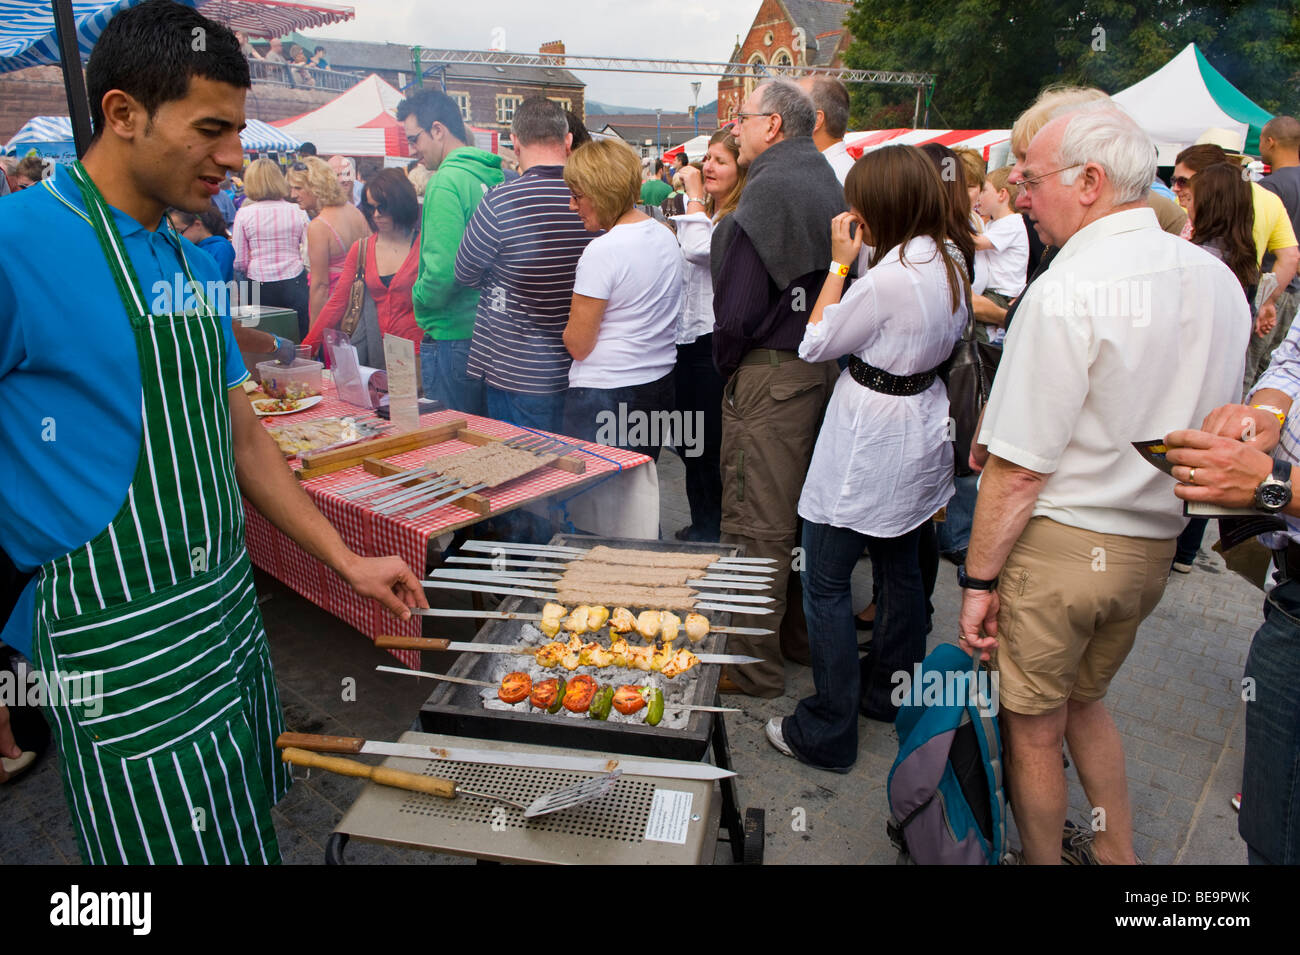 Kebabs being cooked on barbecue at Abergavenny Food Festival Monmouthshire South Wales UK - Stock Image